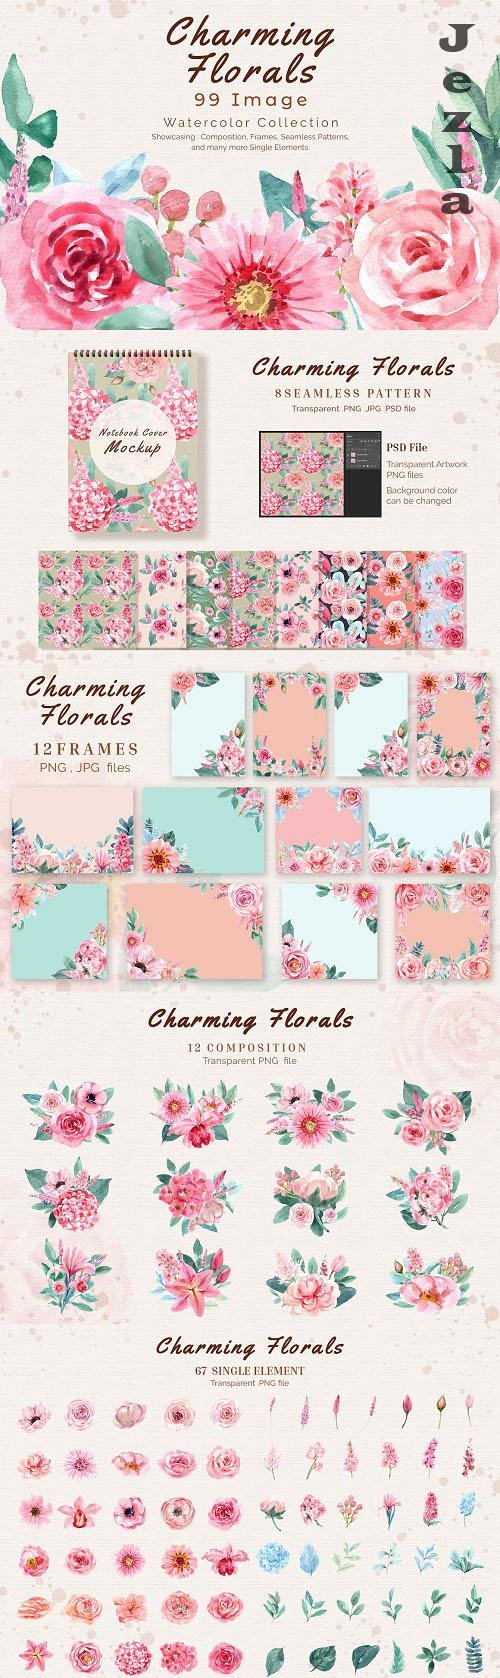 Charming Flowers of wedding watercolor - 6298138